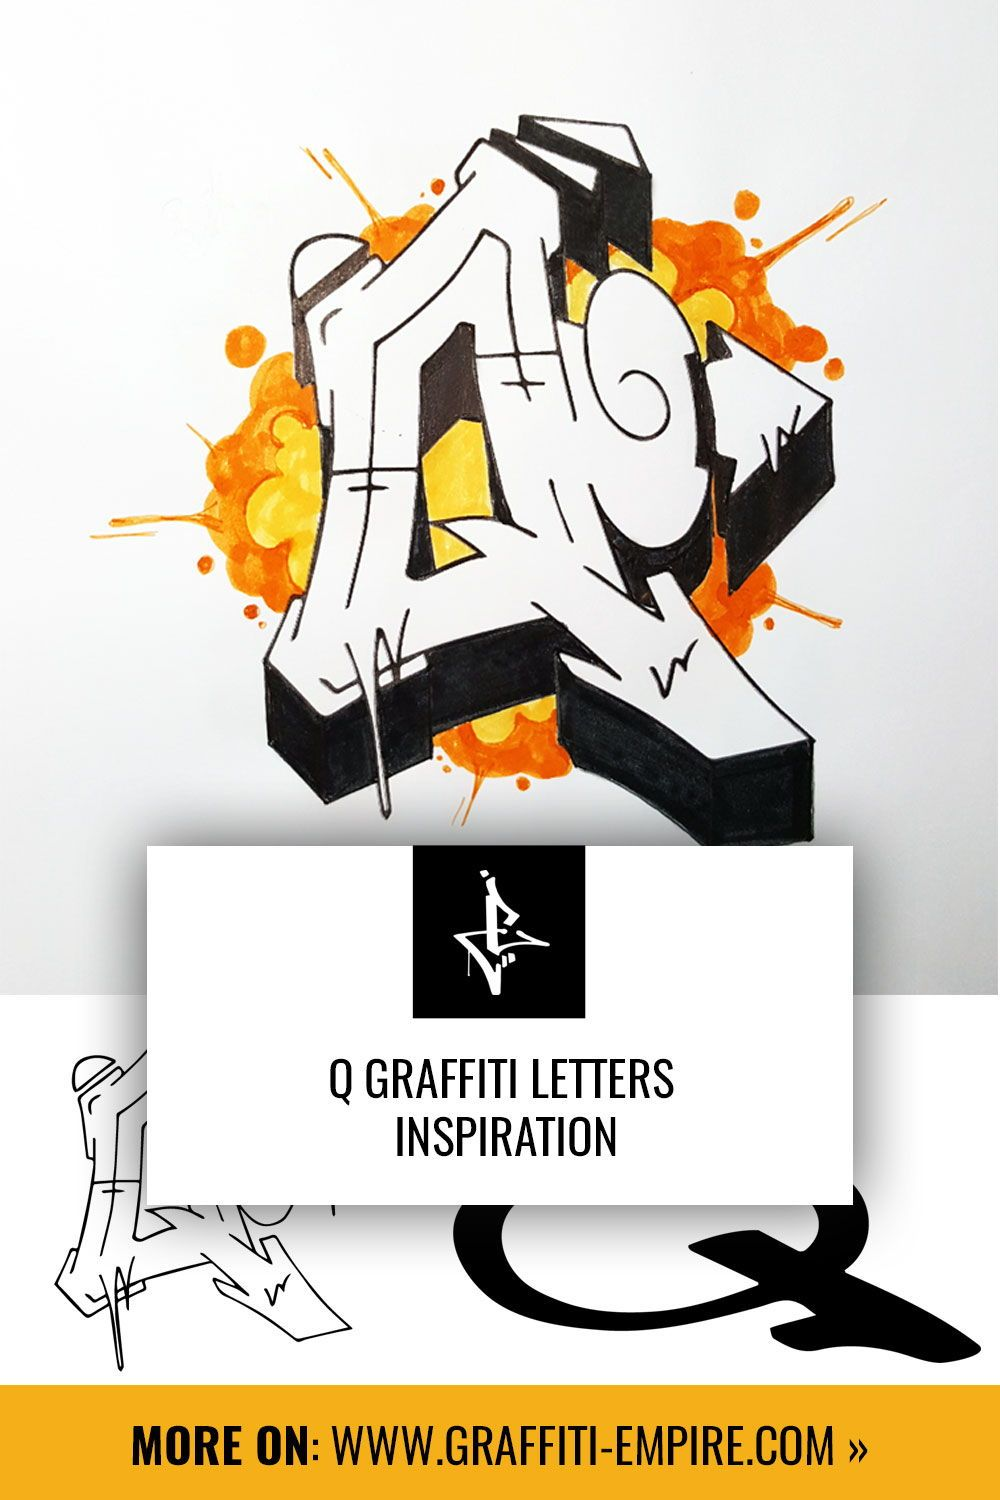 Graffiti Letter Q [images] in different styles in 2020